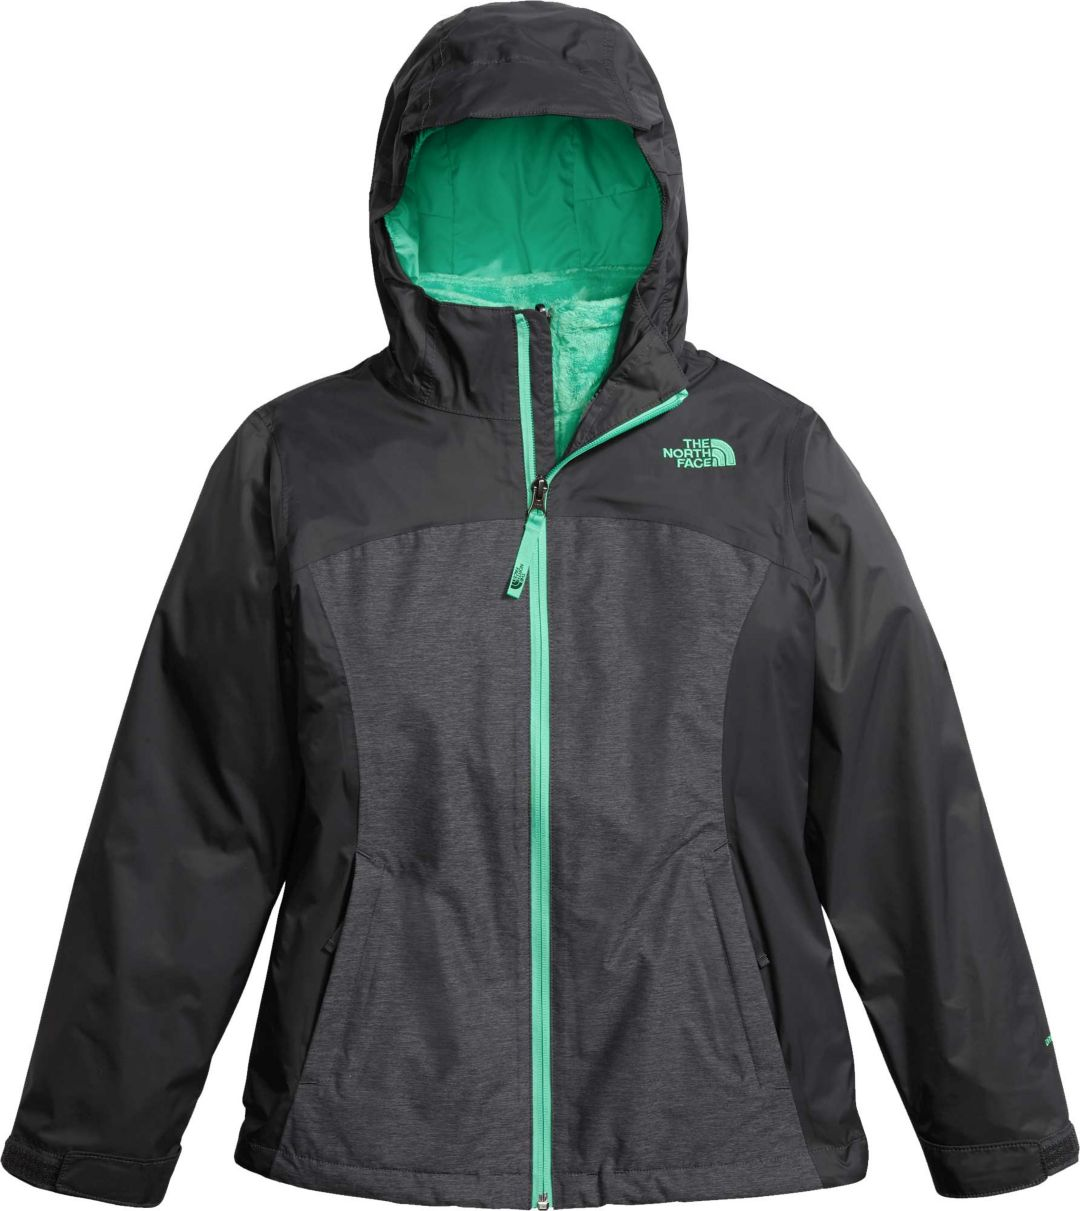 77faa295d The North Face Girls' Osolita Triclimate Jacket